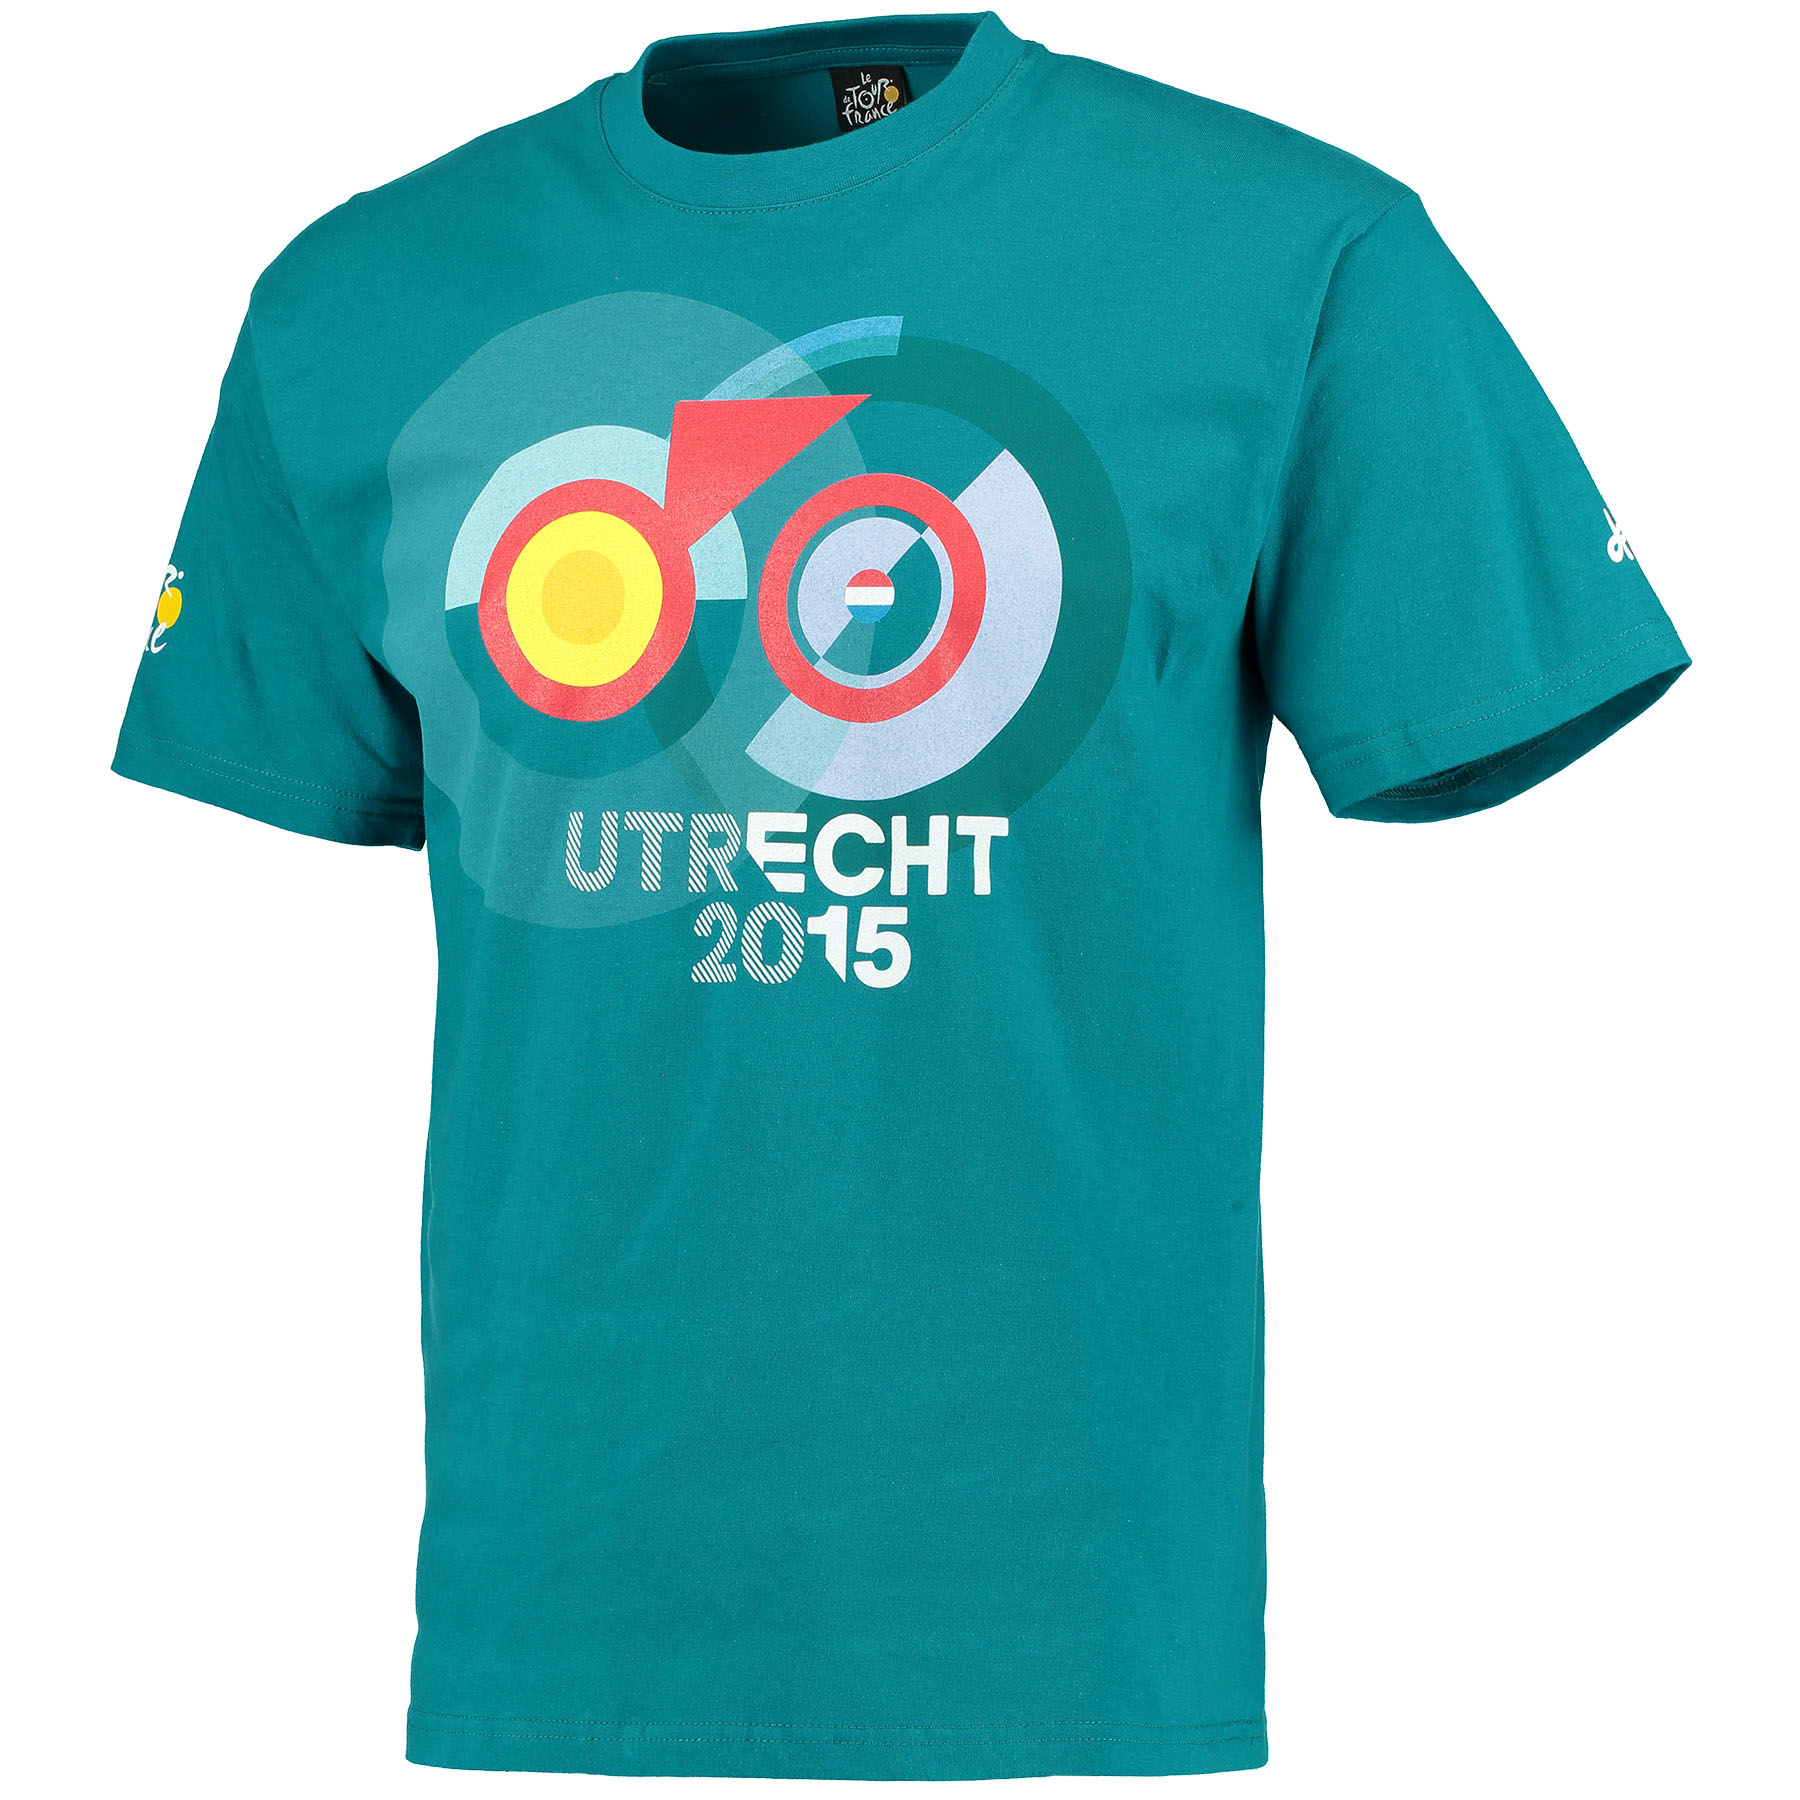 Le Tour de France Utrecht 2015 Grand Depart T-Shirt